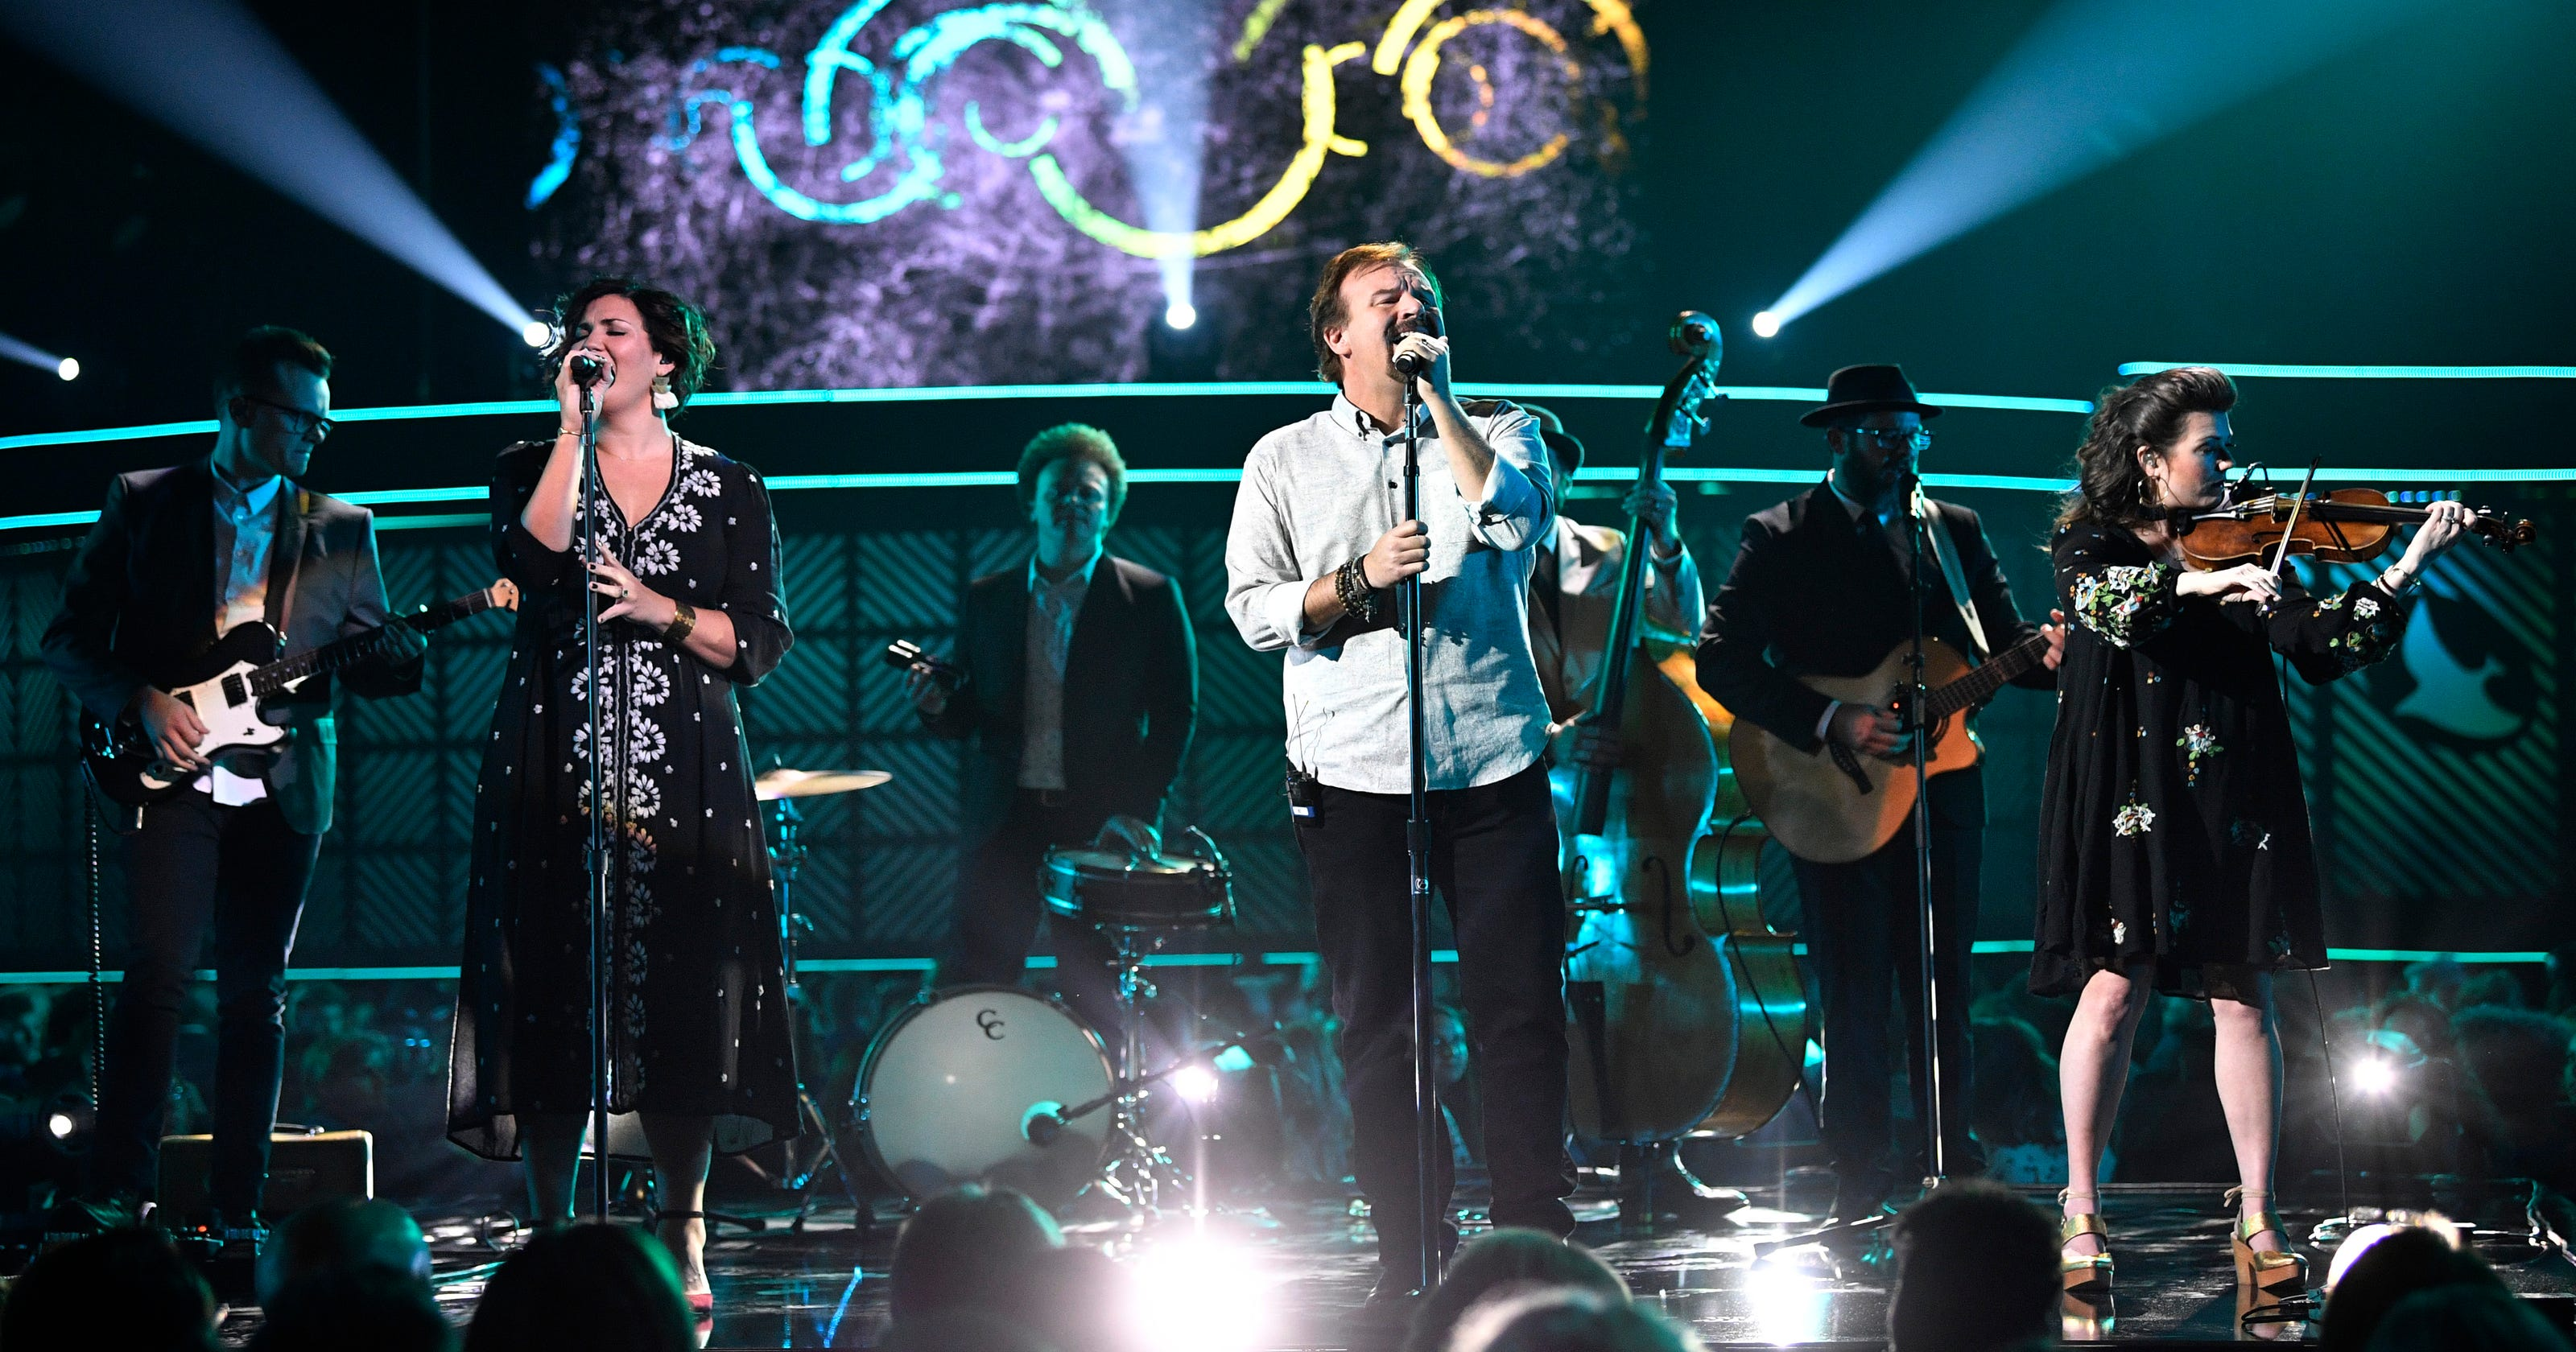 Casting Crowns Christmas.Casting Crowns For King And Country Bring Christmas Tour To